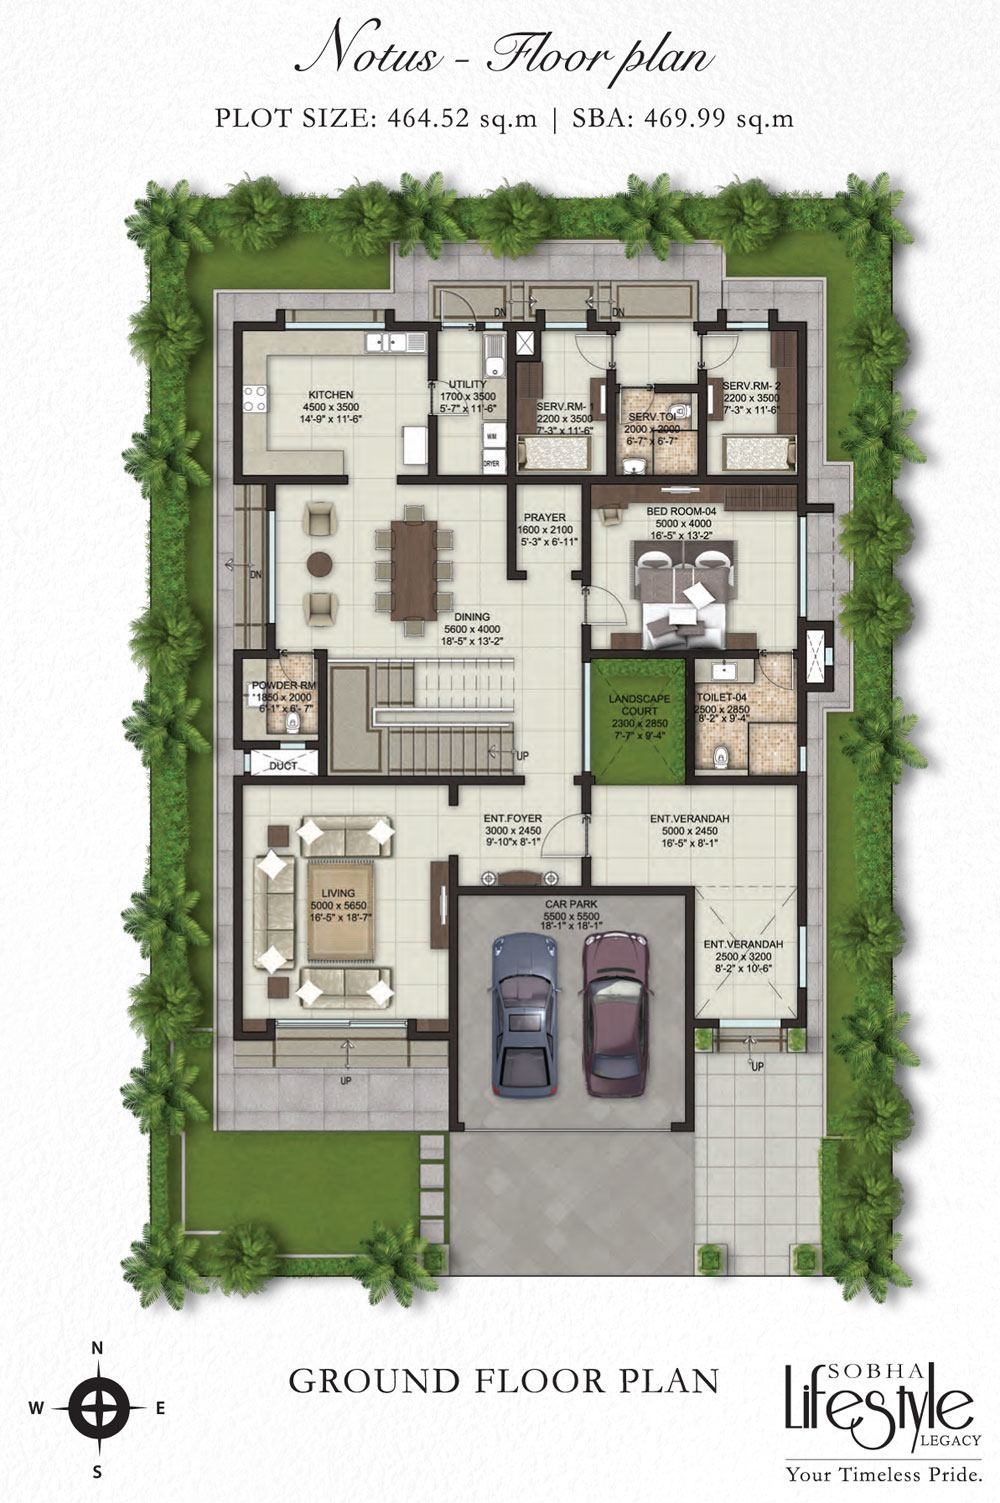 28 villa floor plans luxury villas floor plans modern for Italian villa floor plans